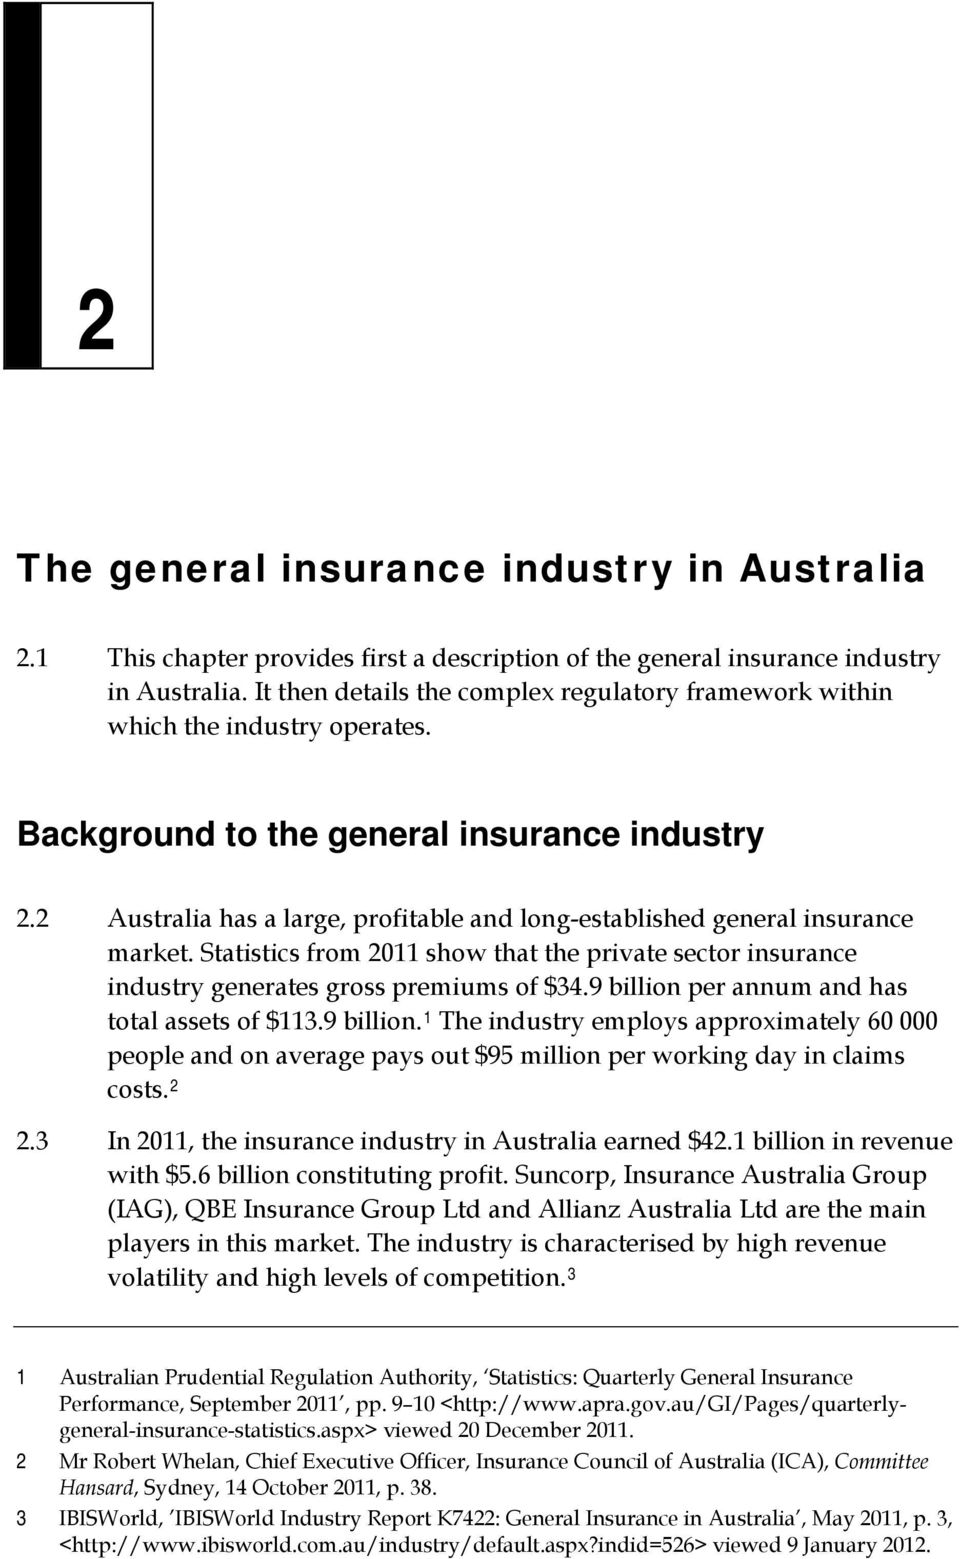 2 Australia has a large, profitable and long-established general insurance market. Statistics from 2011 show that the private sector insurance industry generates gross premiums of $34.